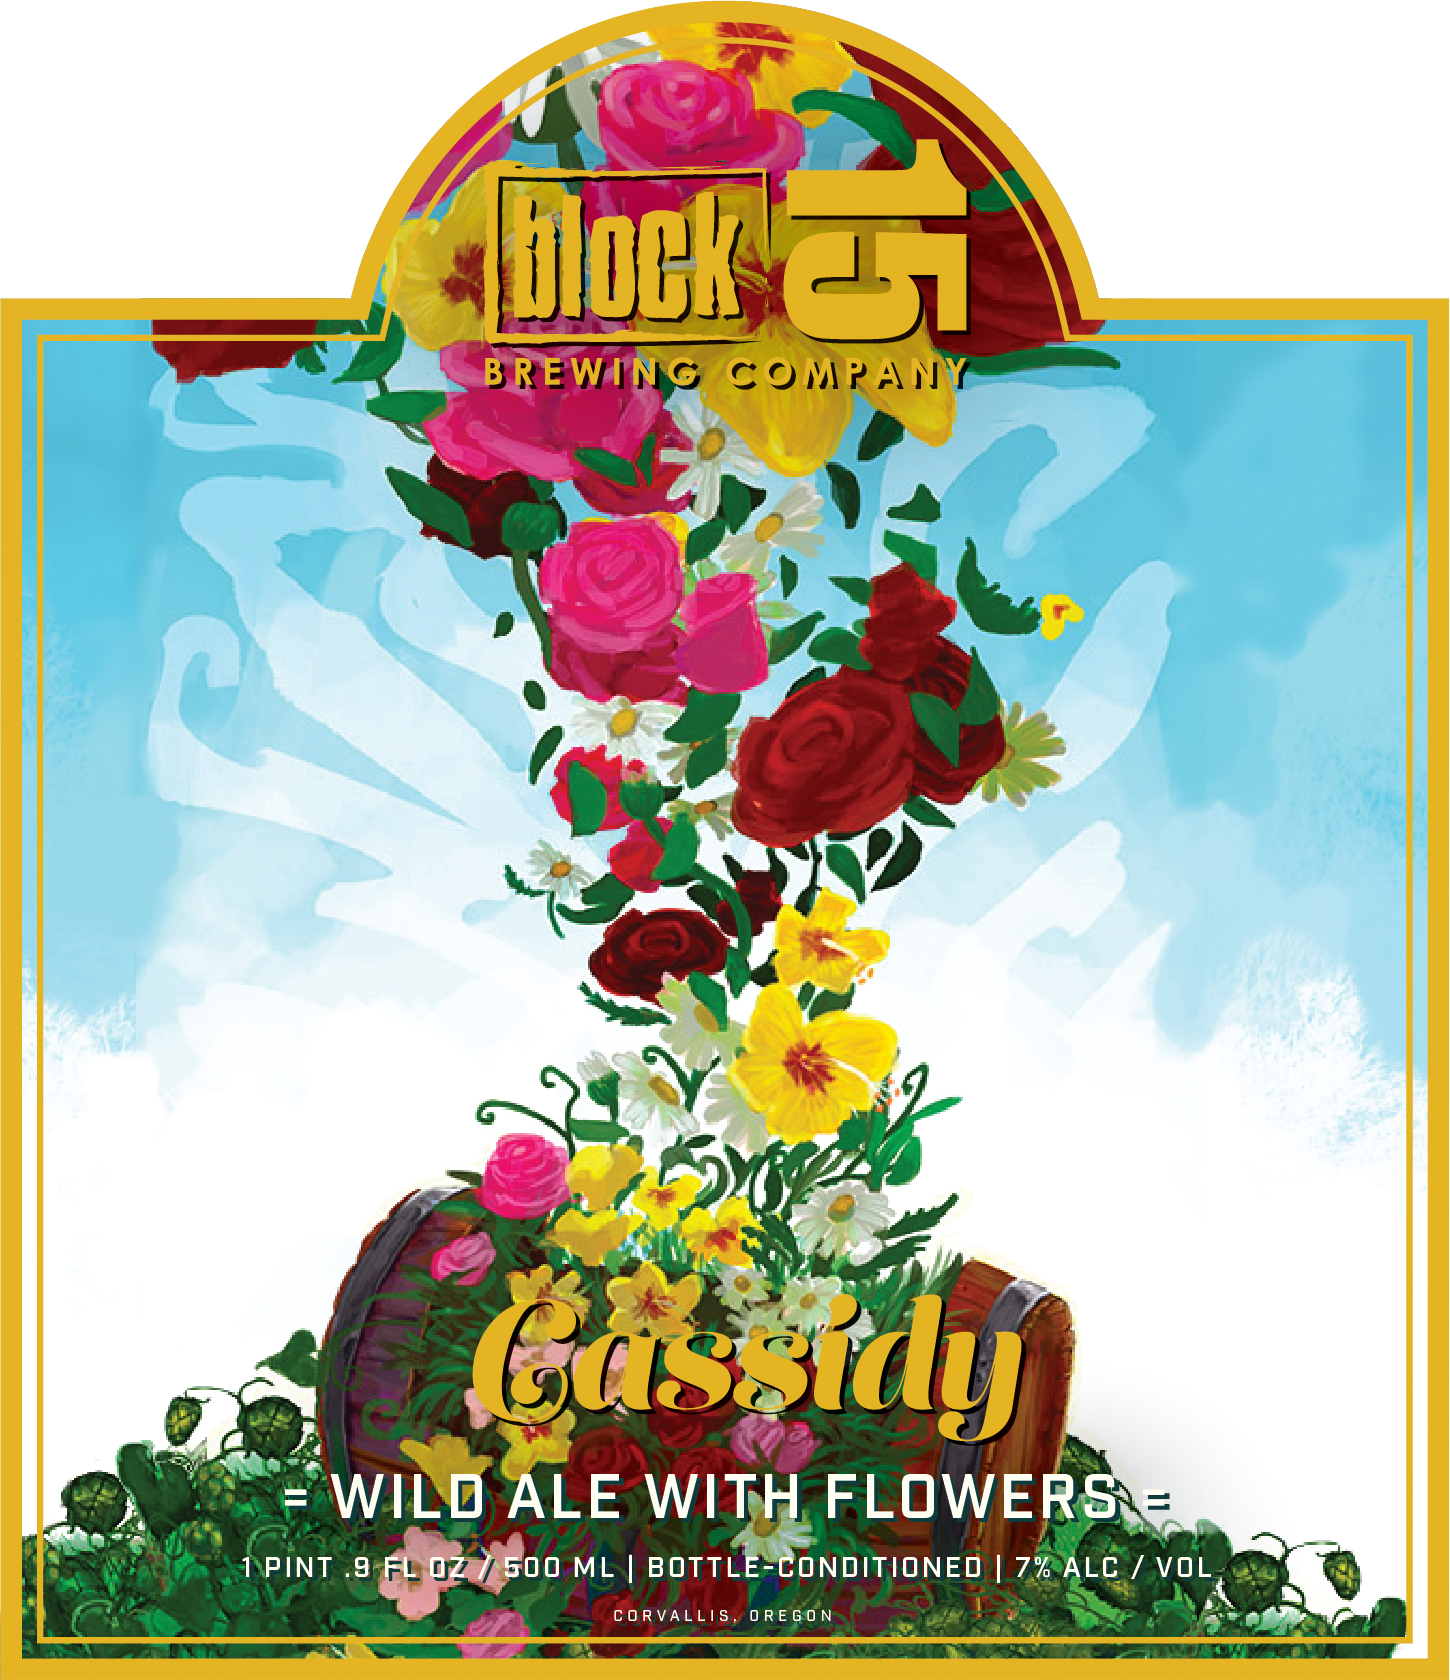 Block 15 - July 2018 releases